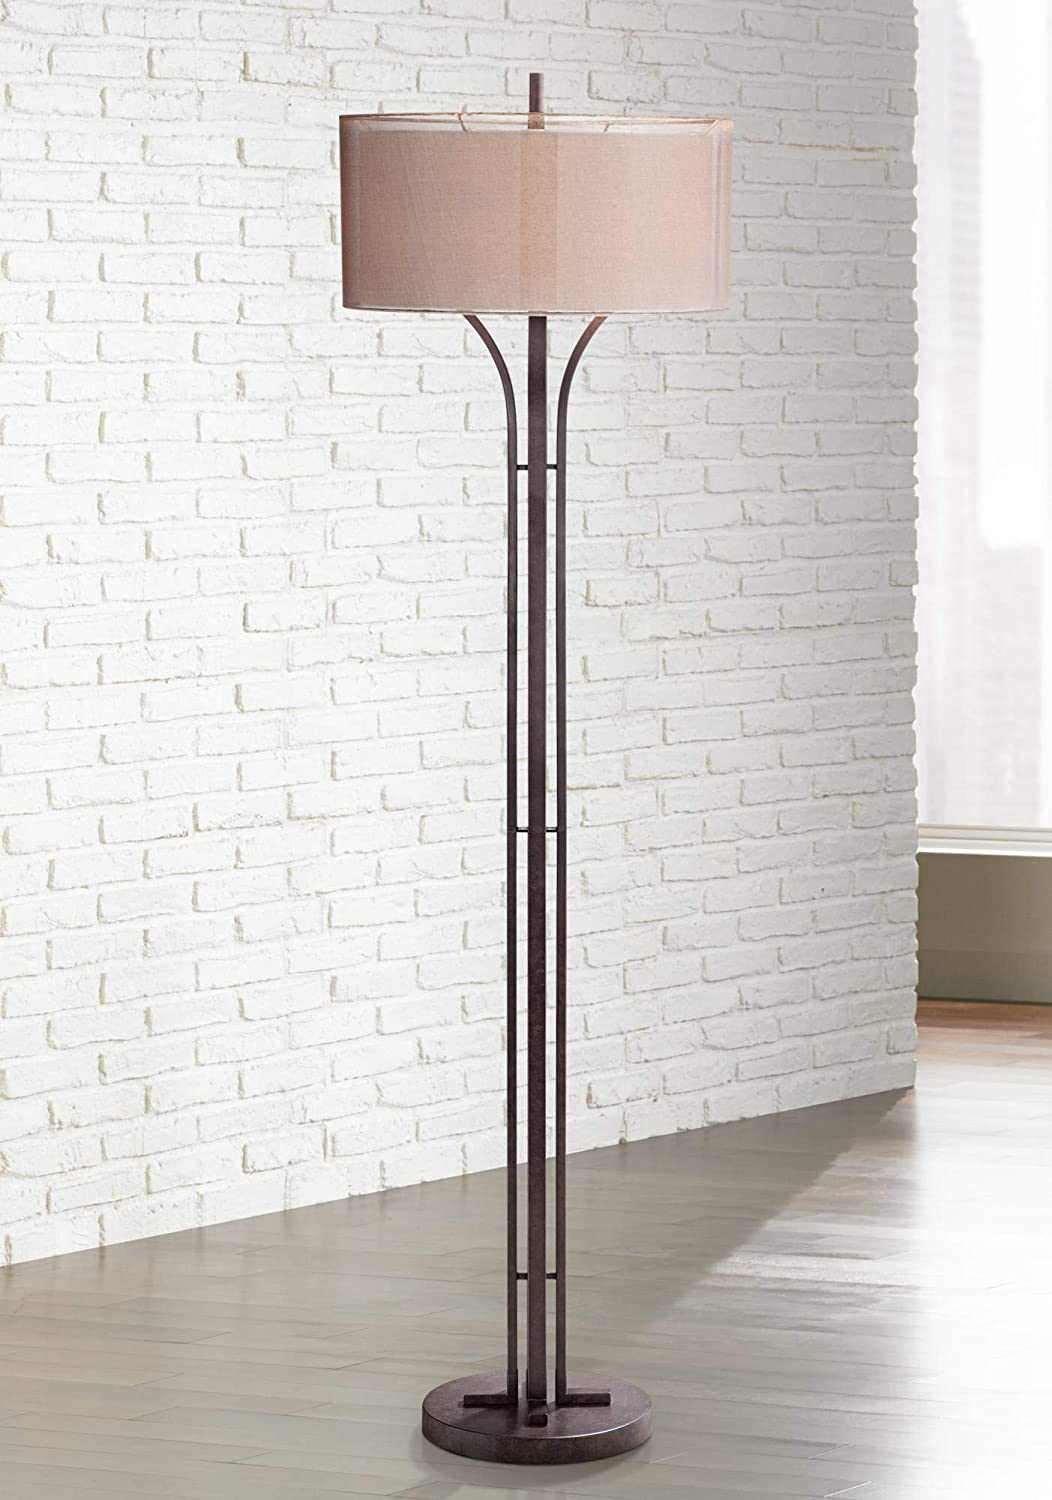 Tristan Modern Floor Lamp Bronze Metal Sheer Brown and Textured Linen Double Drum Shades for Living Room Reading – Franklin Iron Works